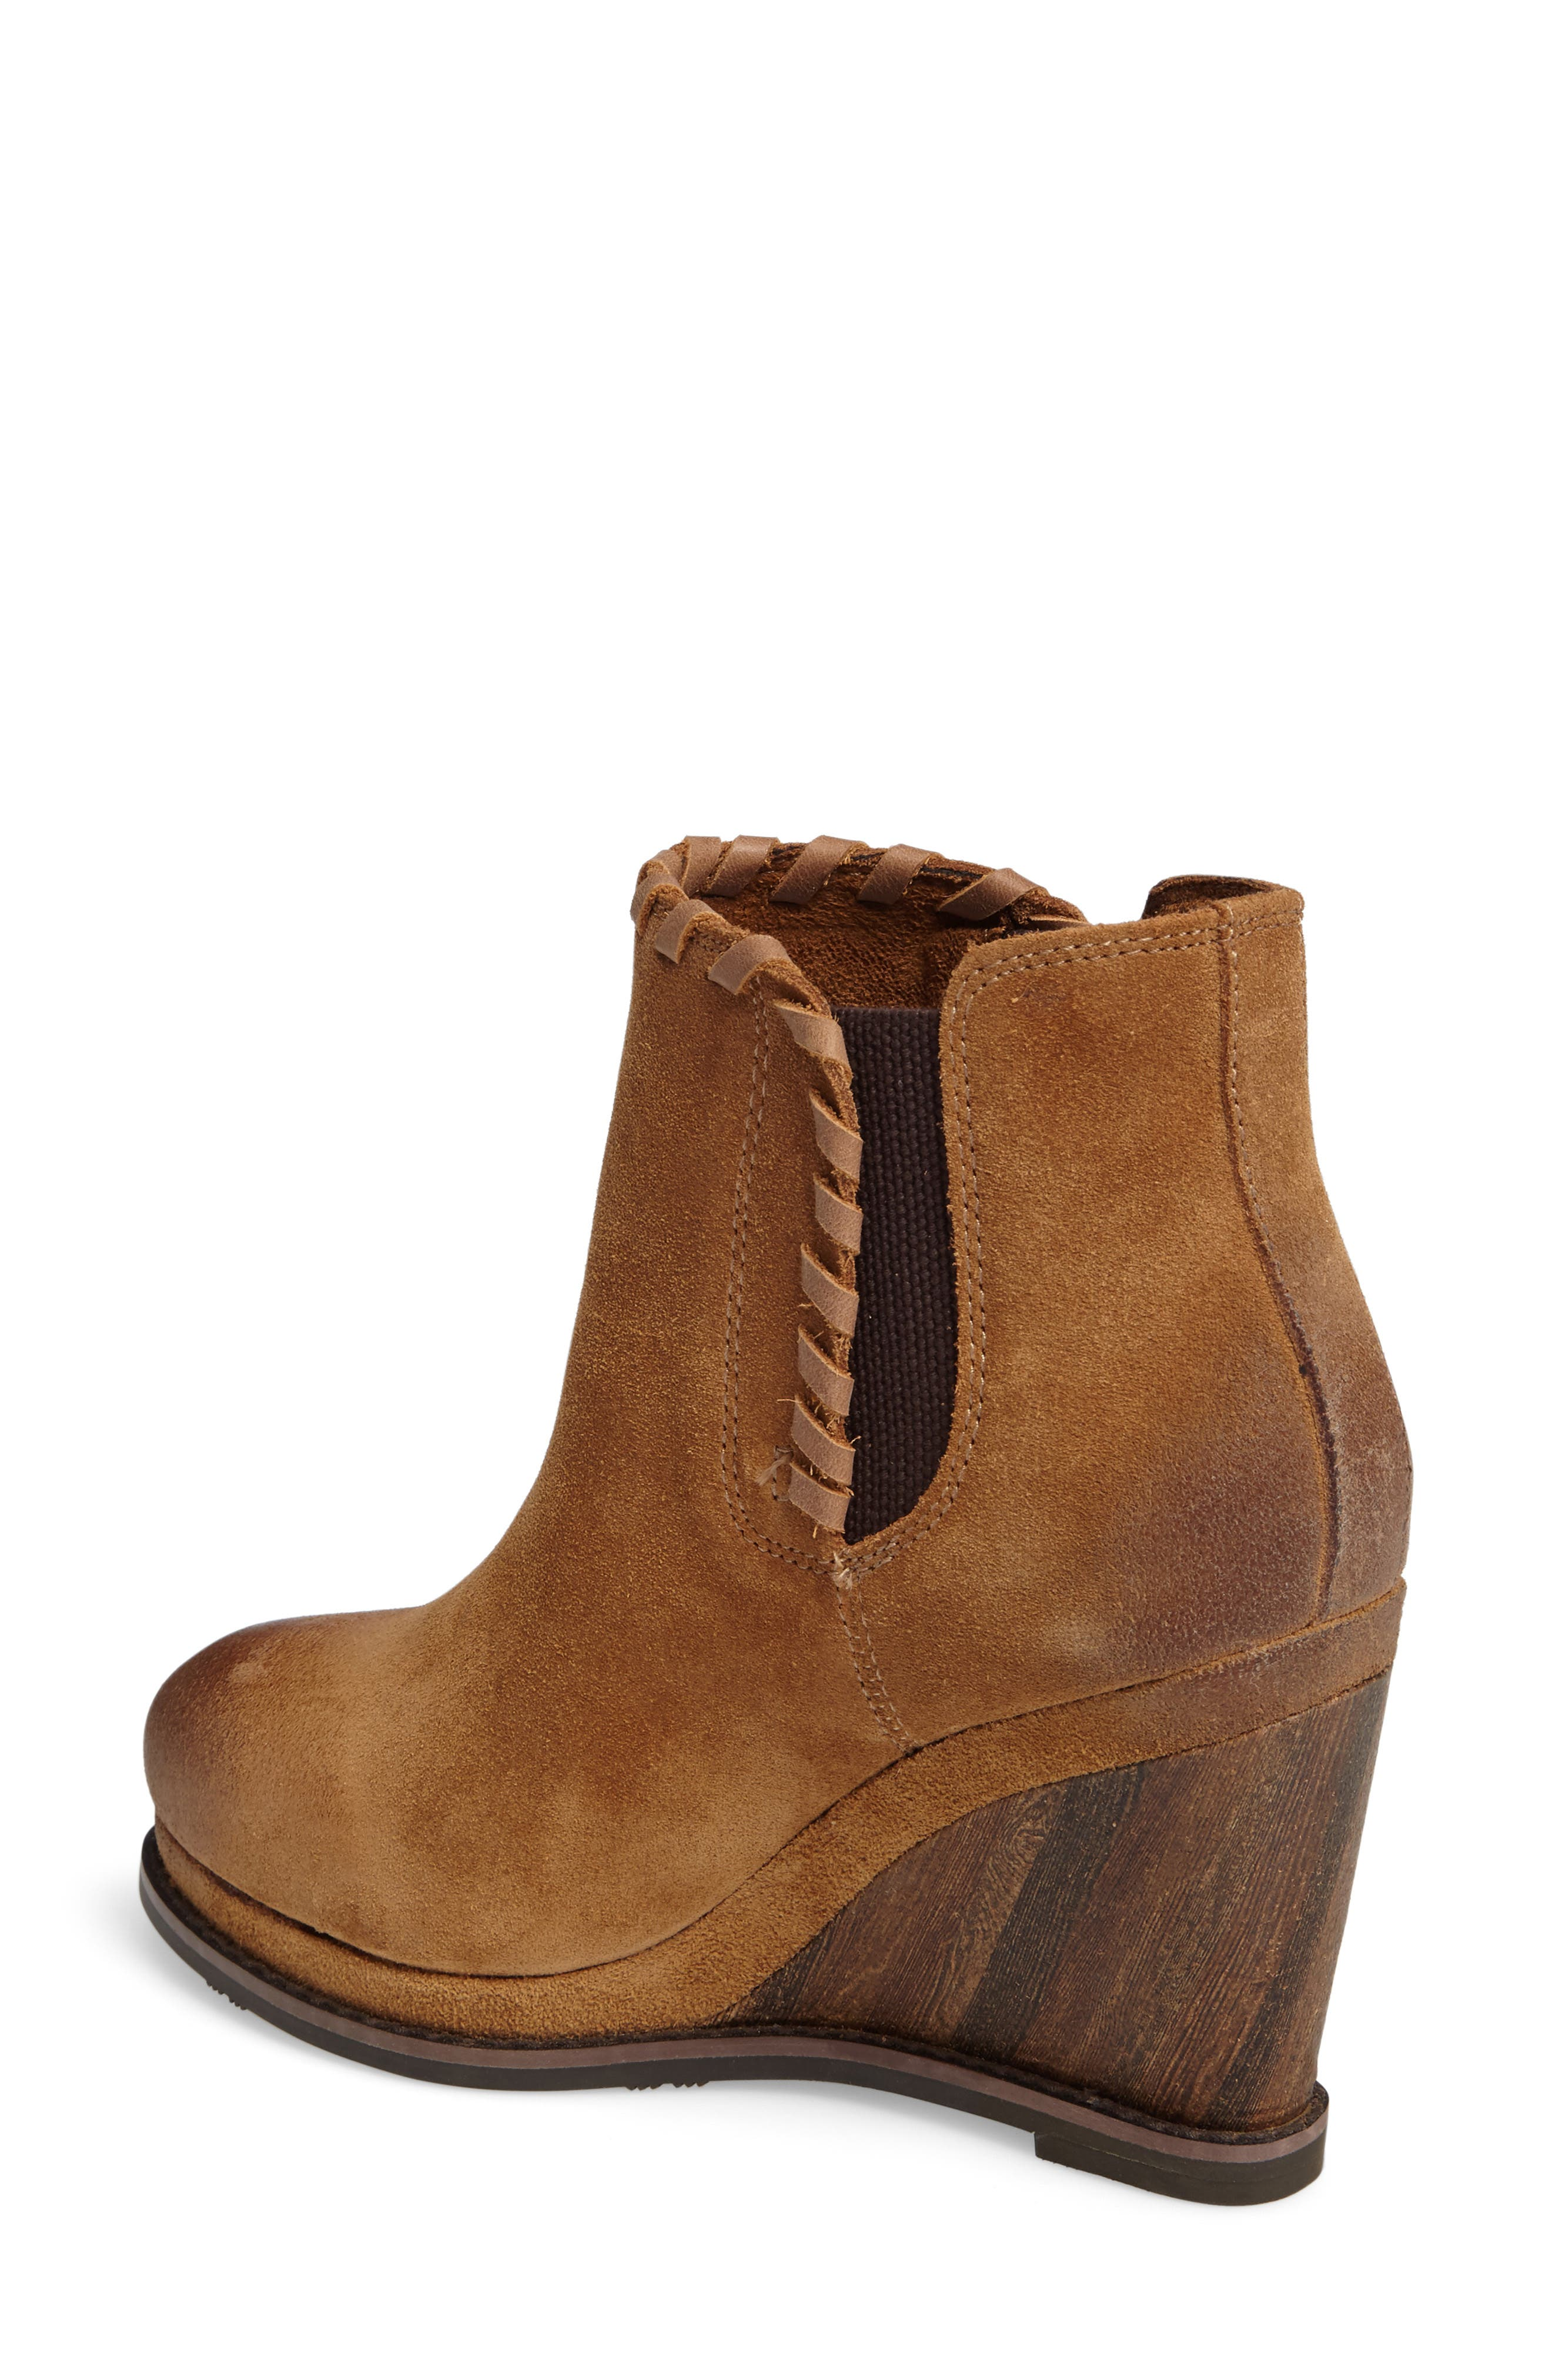 Belle Wedge Bootie,                             Alternate thumbnail 2, color,                             SAND LEATHER